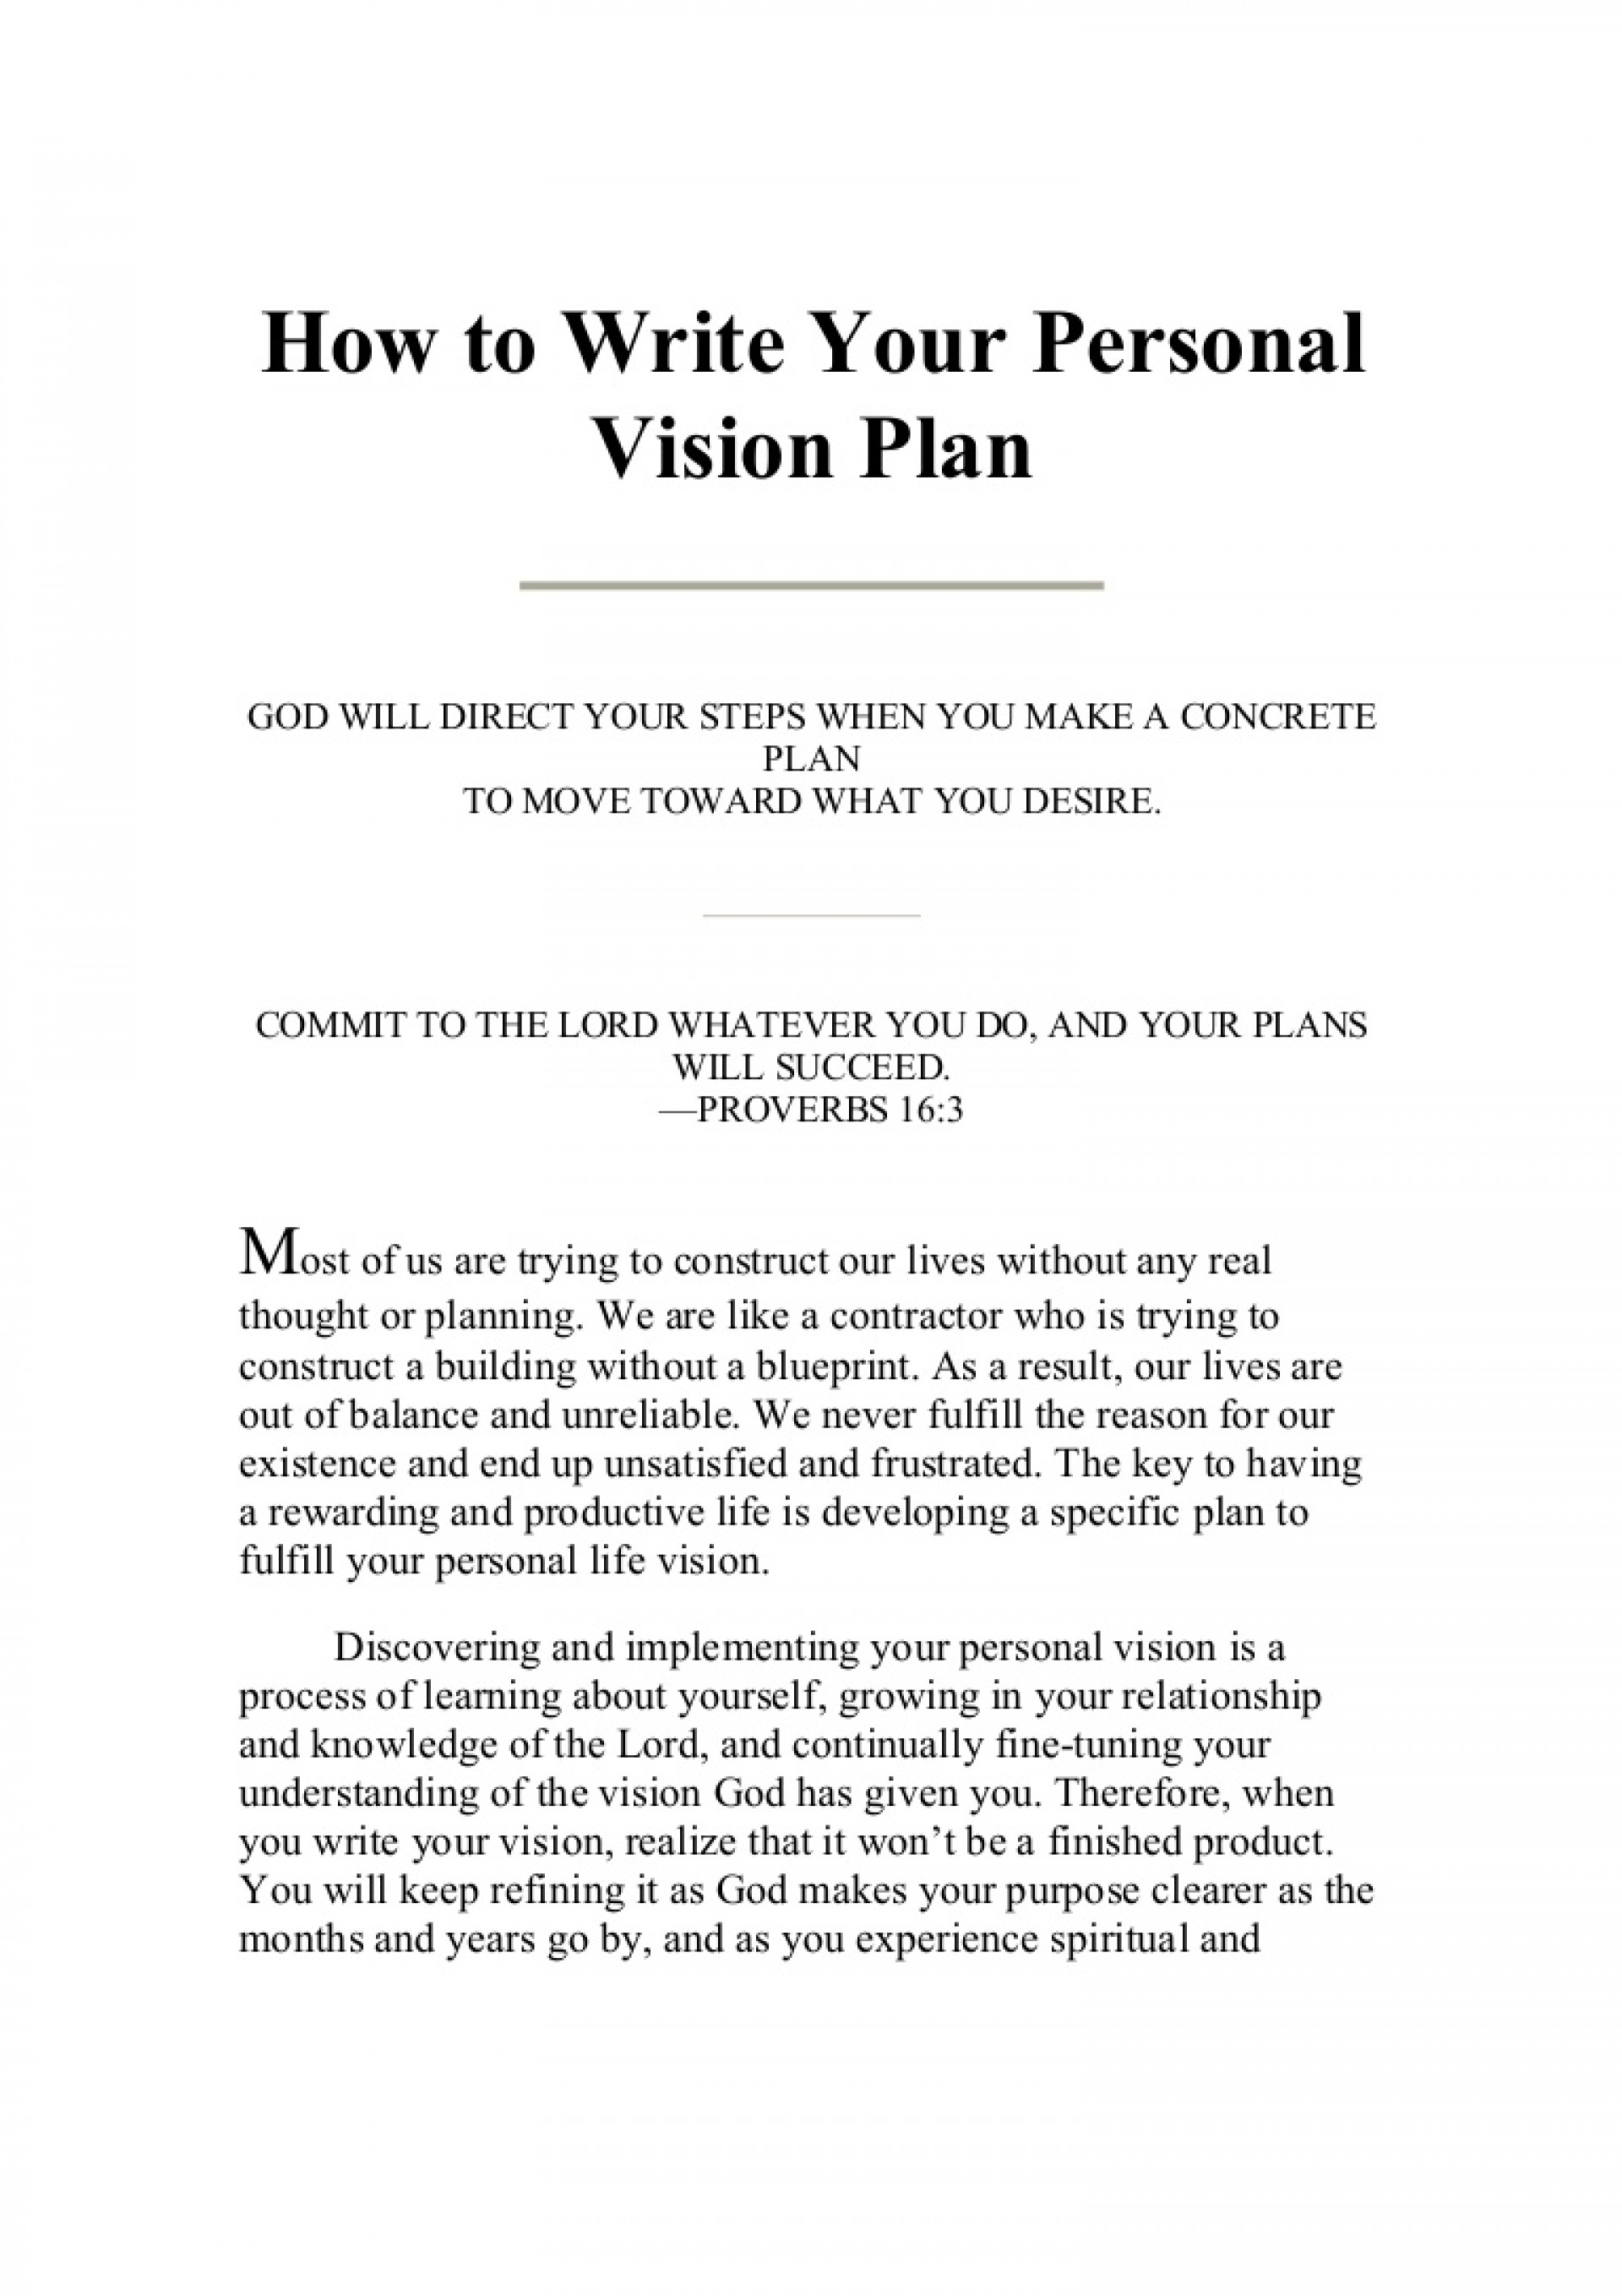 011 Where Do You See Yourself In Years Essay Example Howtowriteyourpersonalvisionplan Phpapp01 Thumbnail Sensational 10 U 1920